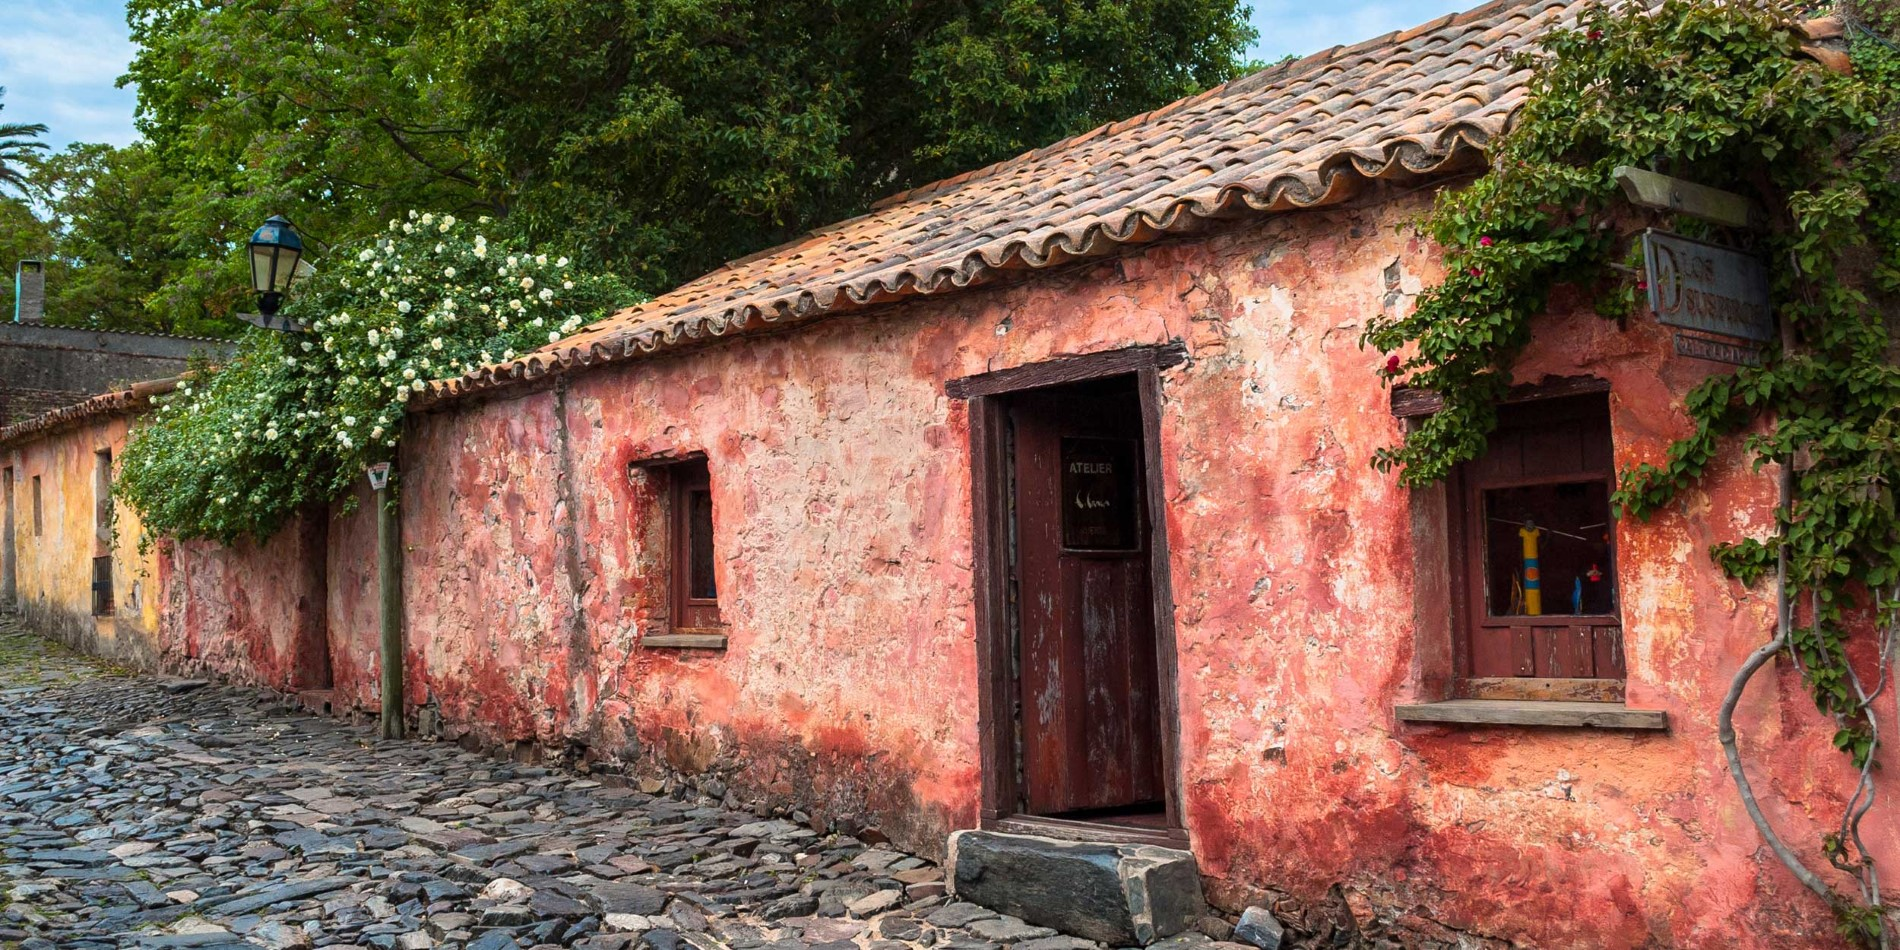 Join us for a trip to Colonia del Sacramento, a UNESCO World Heritage Site